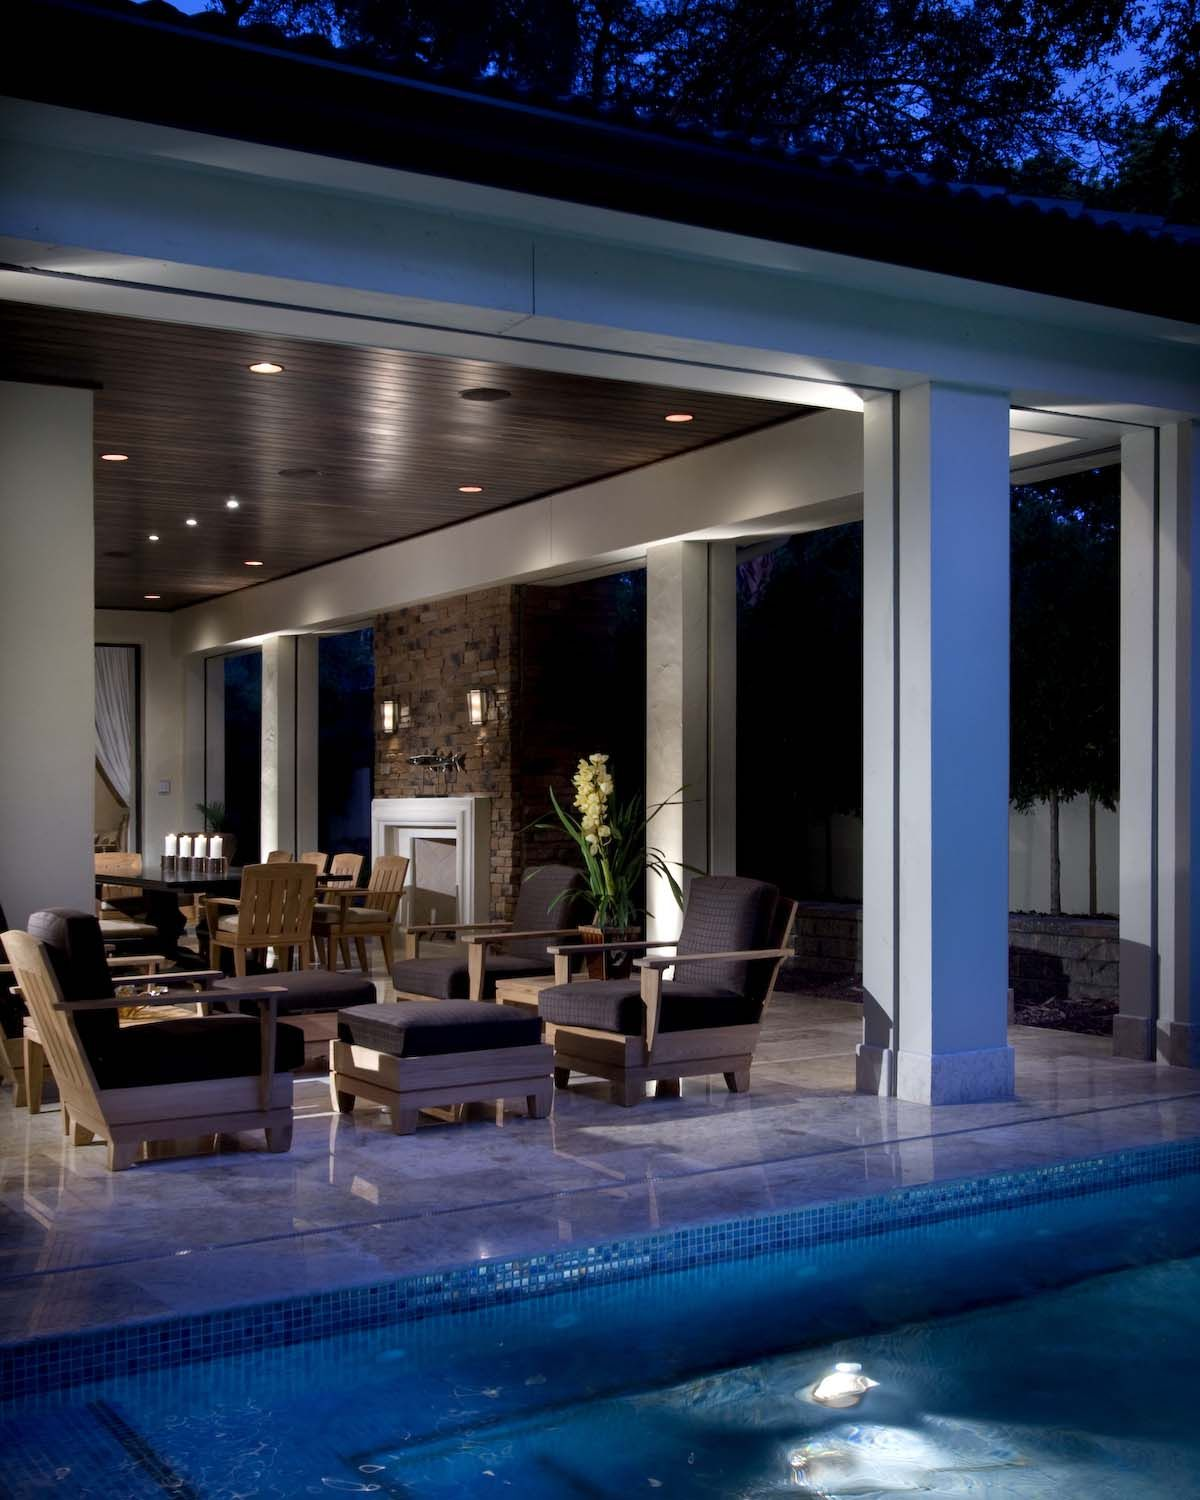 Outdoor Living Space by Phil Kean Designs, Architecture/Construction/Interiors firm - www.PhilKeanDesigns.com #PhilKean